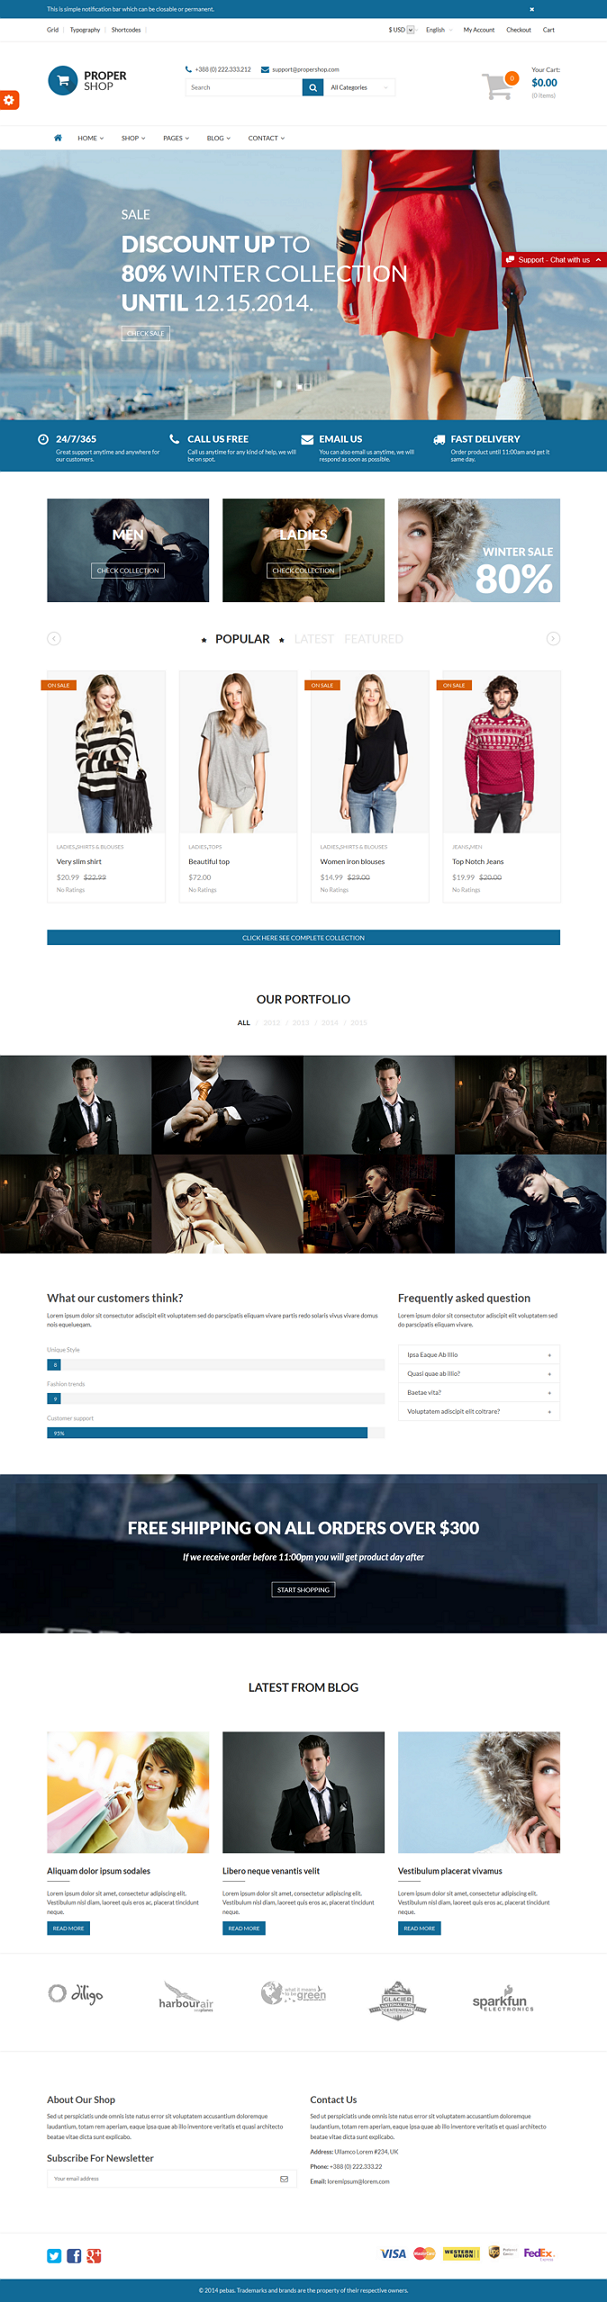 It is perfect WordPress theme for any kind of business. It is highly customizable to suit wide r ...